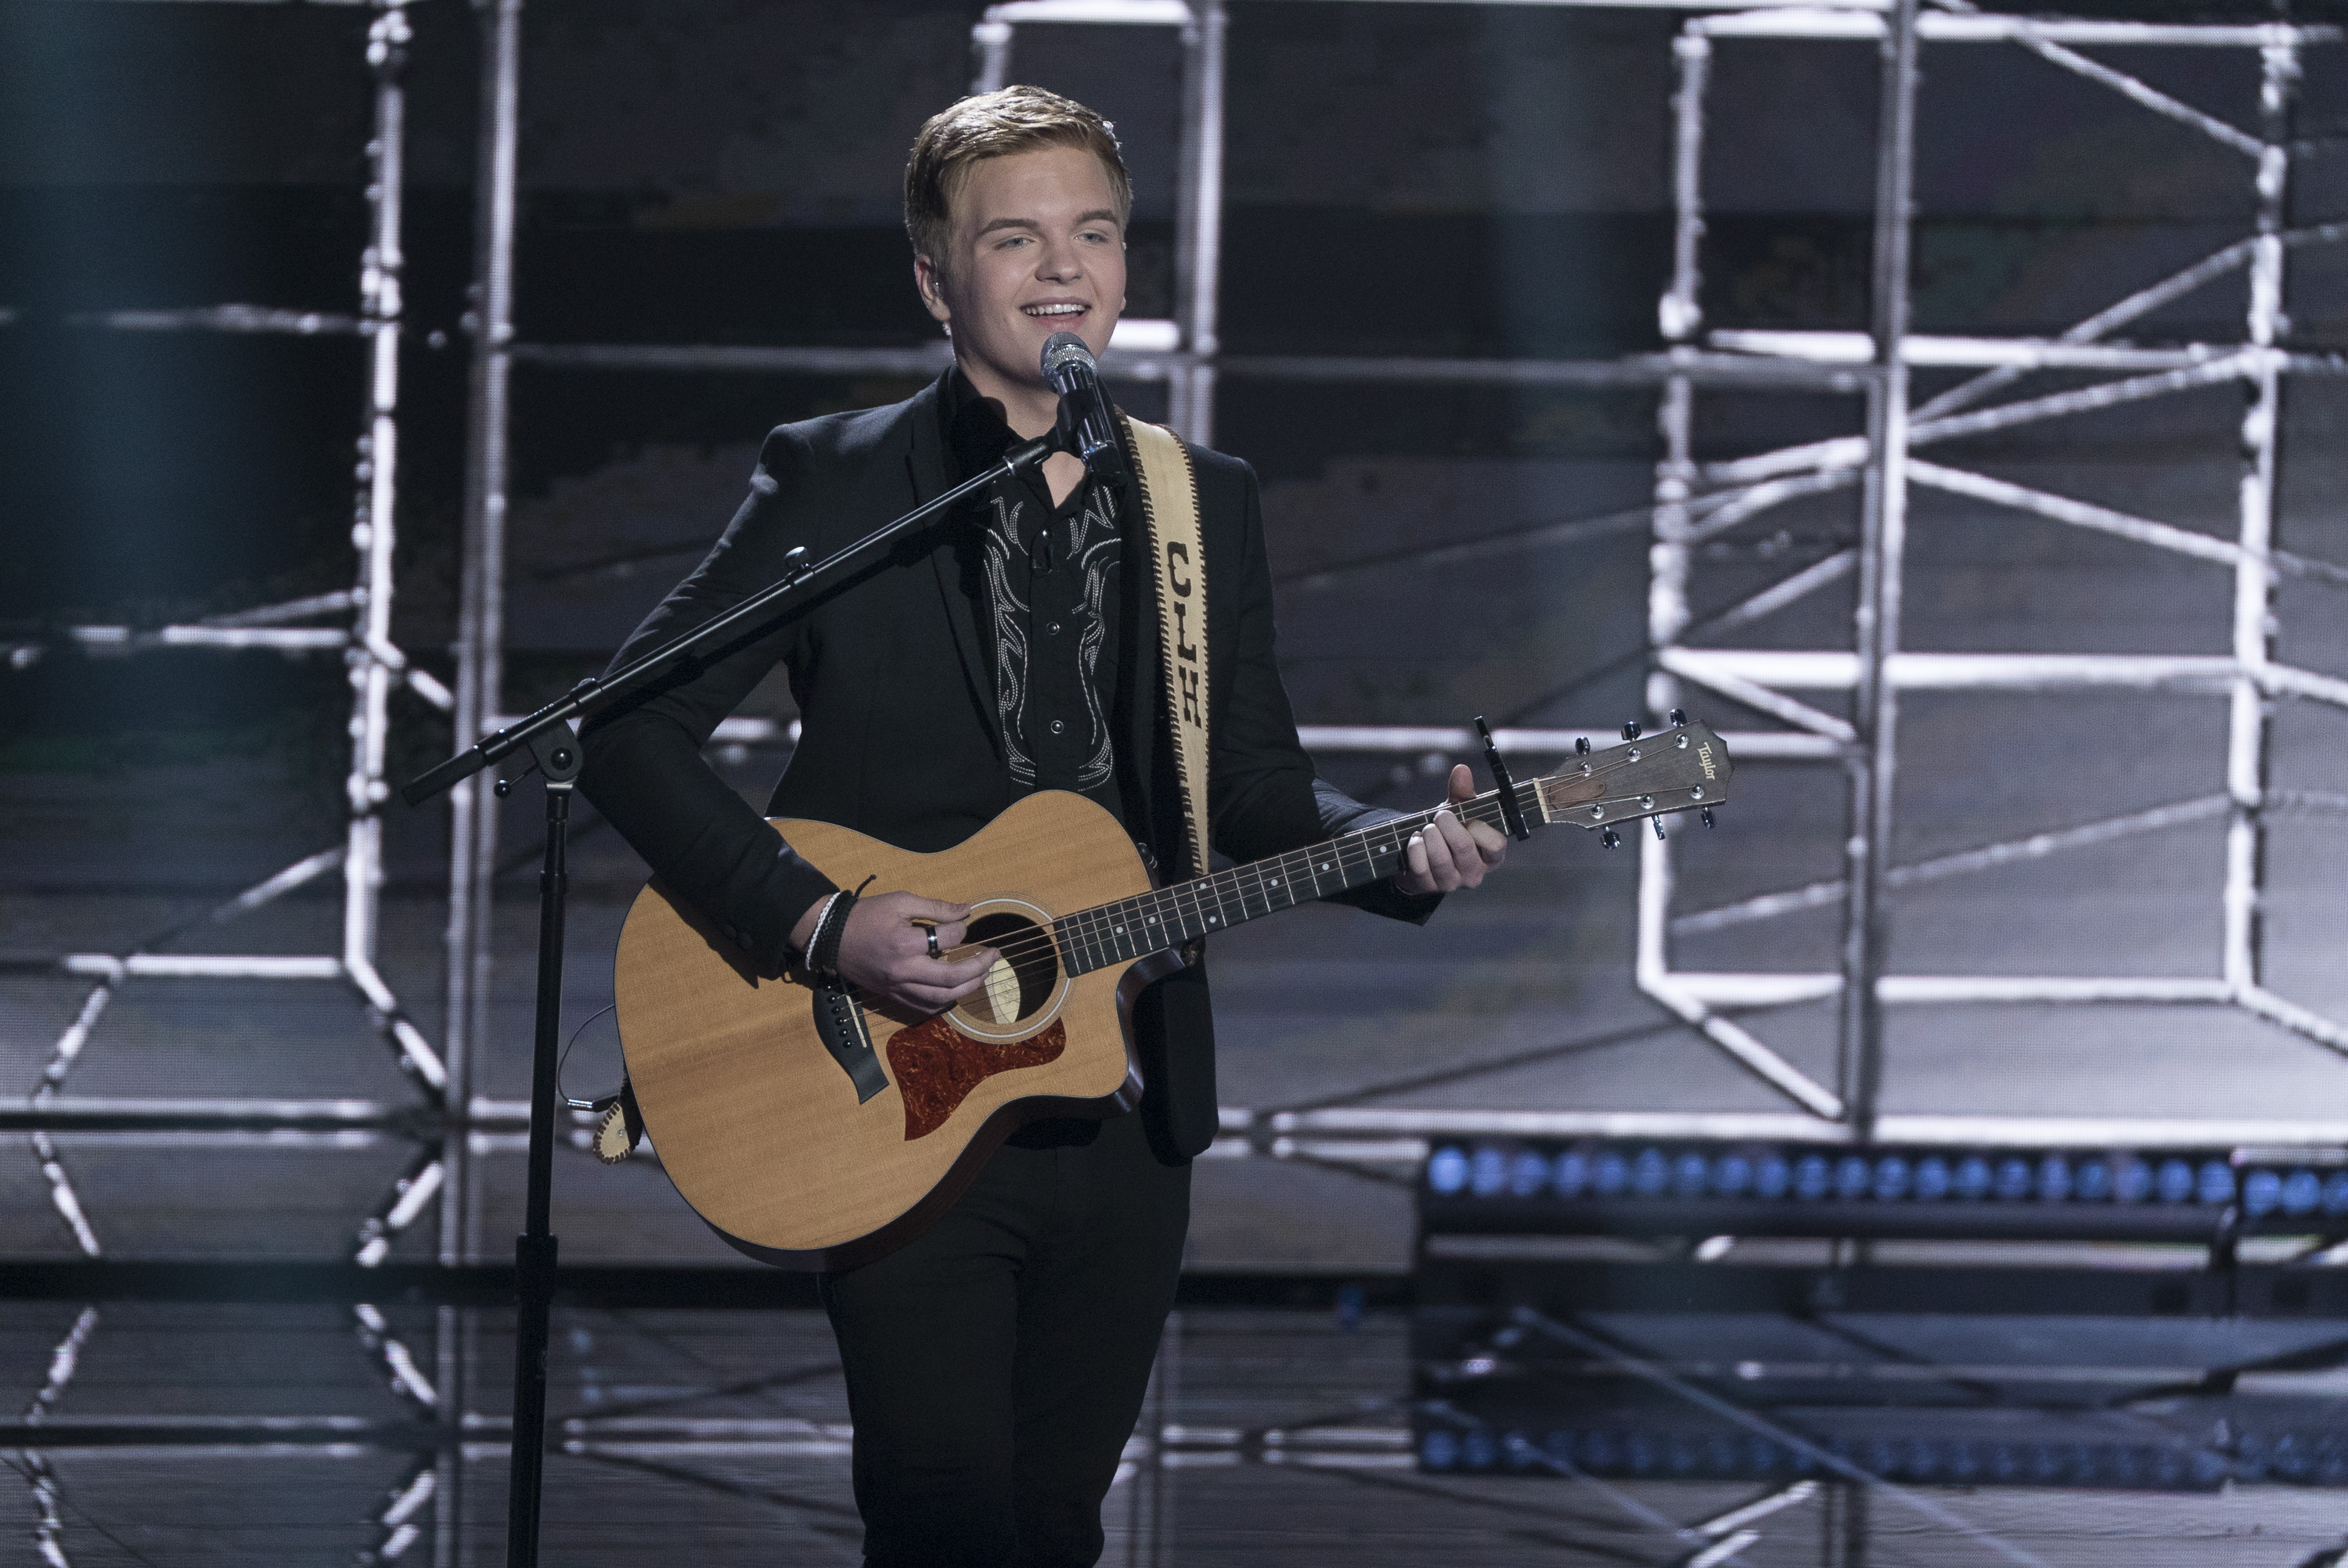 American Idol Results 2018, Season 16 Winner Revealed at Live Finale Tonight